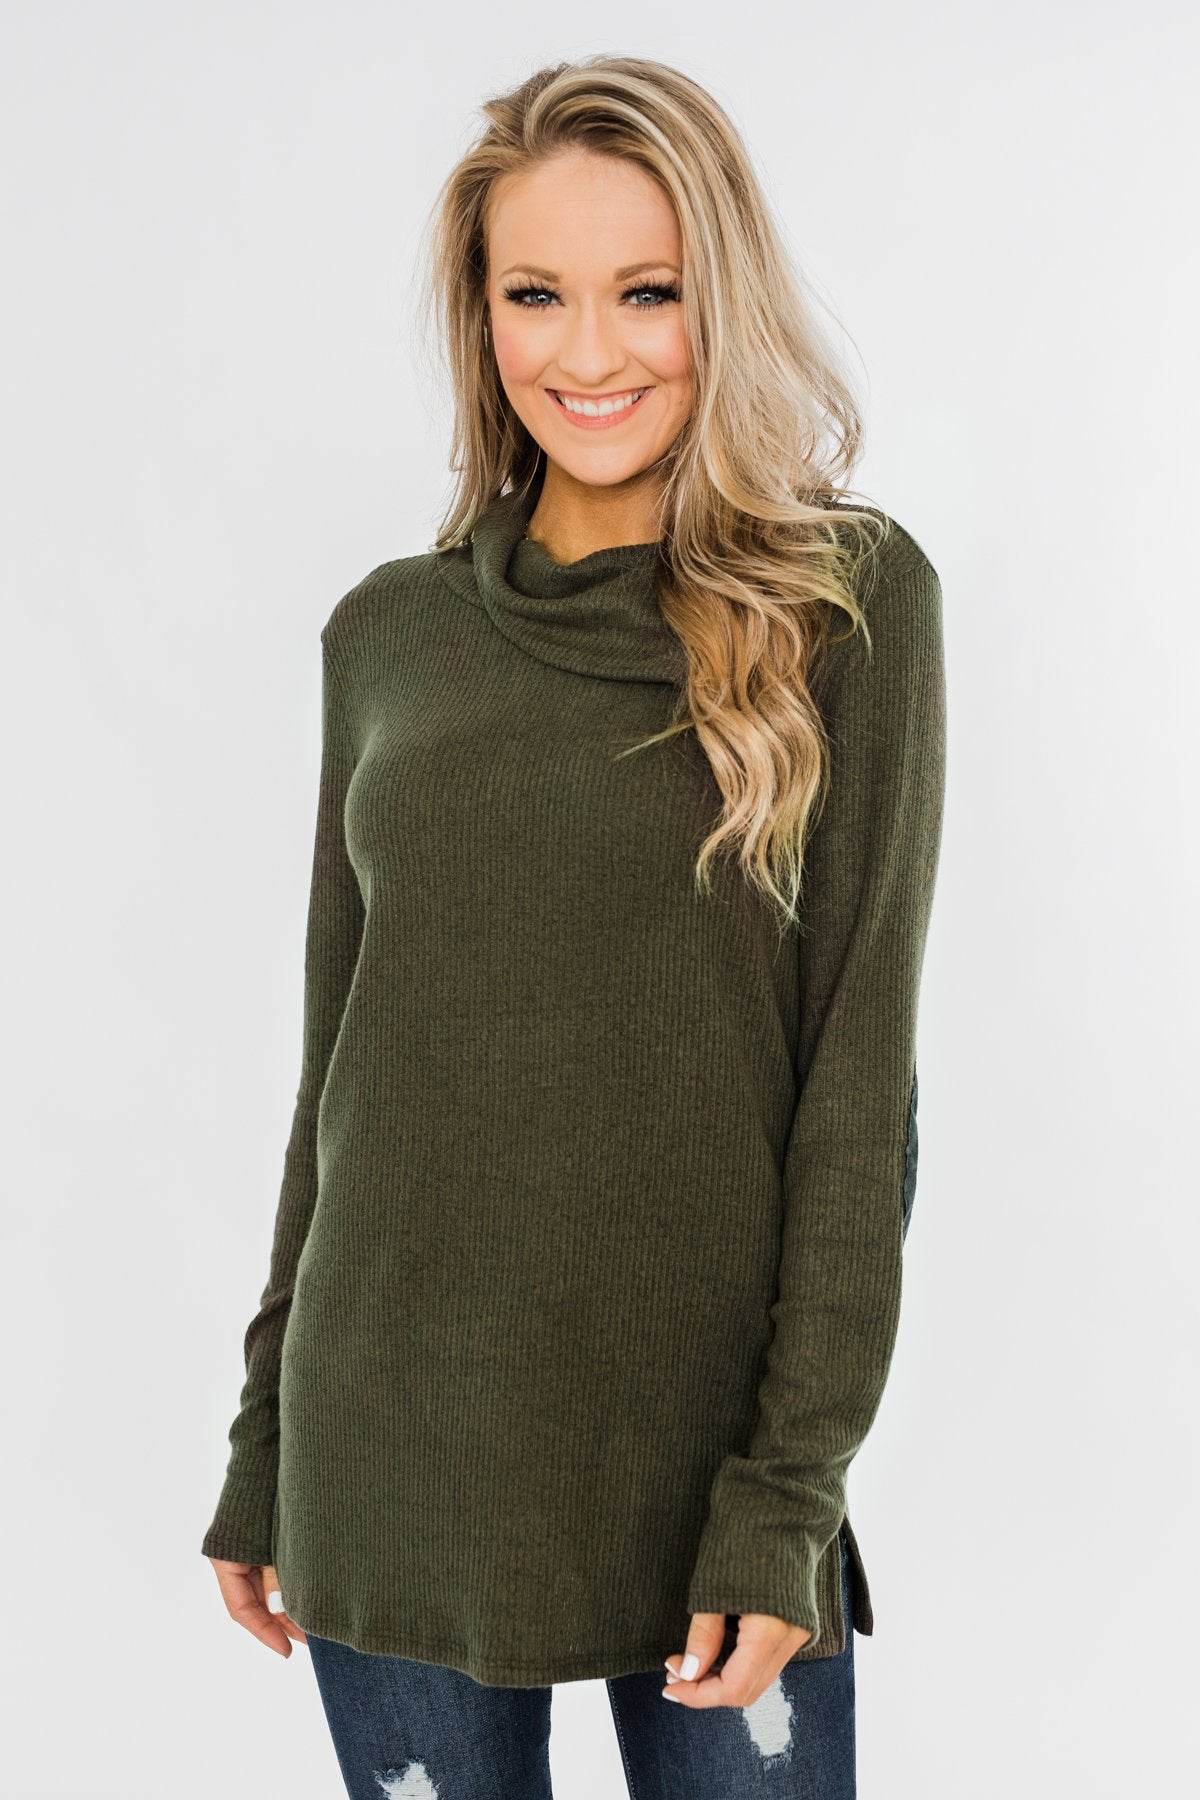 Moments Like This Knit Button Top- Dark Olive